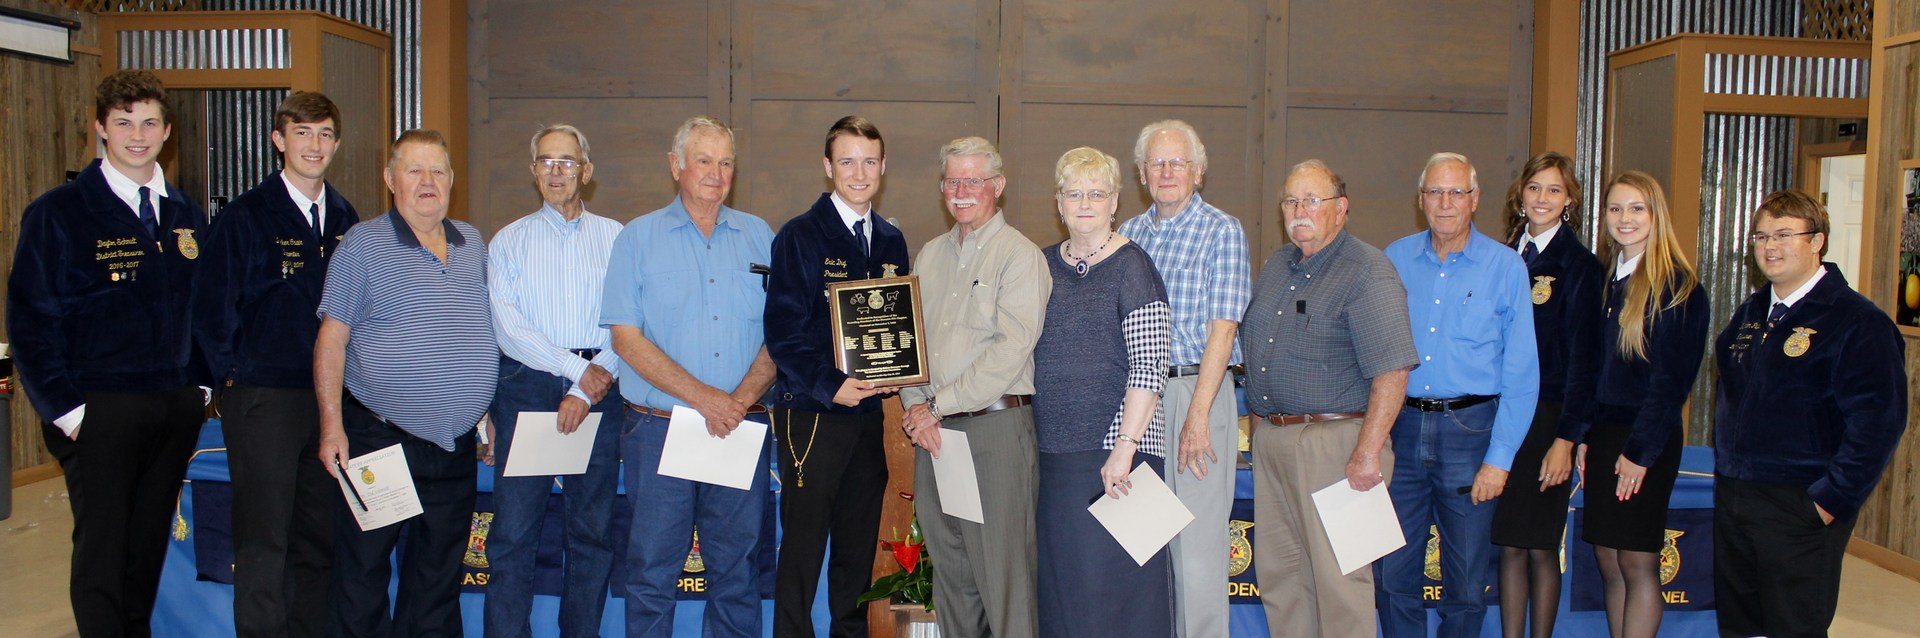 Navarro FFA recognized its founding members at the 2016-2017 Navarro FFA Chapter Awards Banquet in honor of our 60 year anniversary!